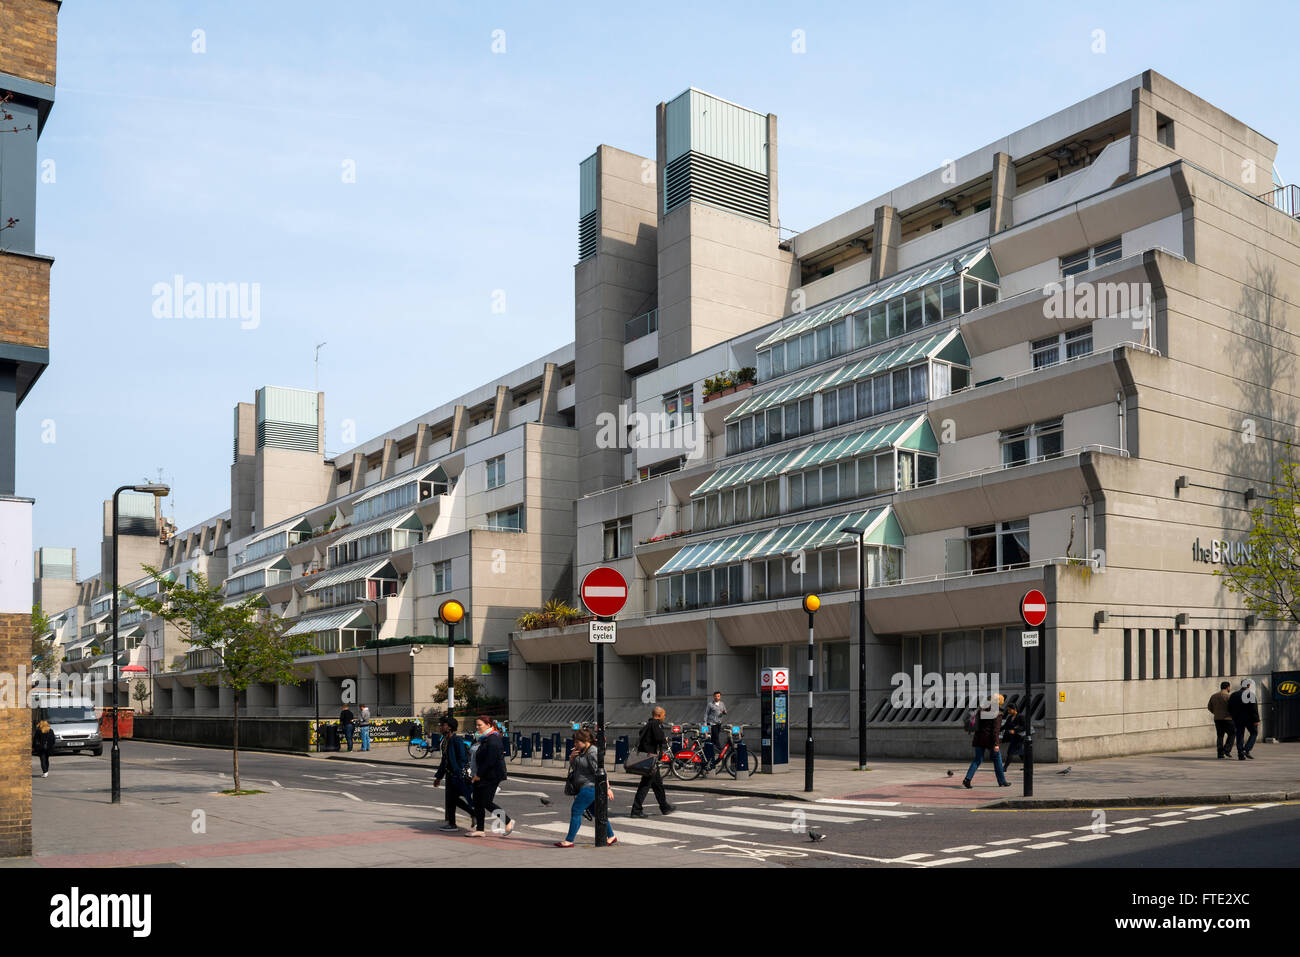 The Brunswick Centre, Bloomsbury, London - Stock Image